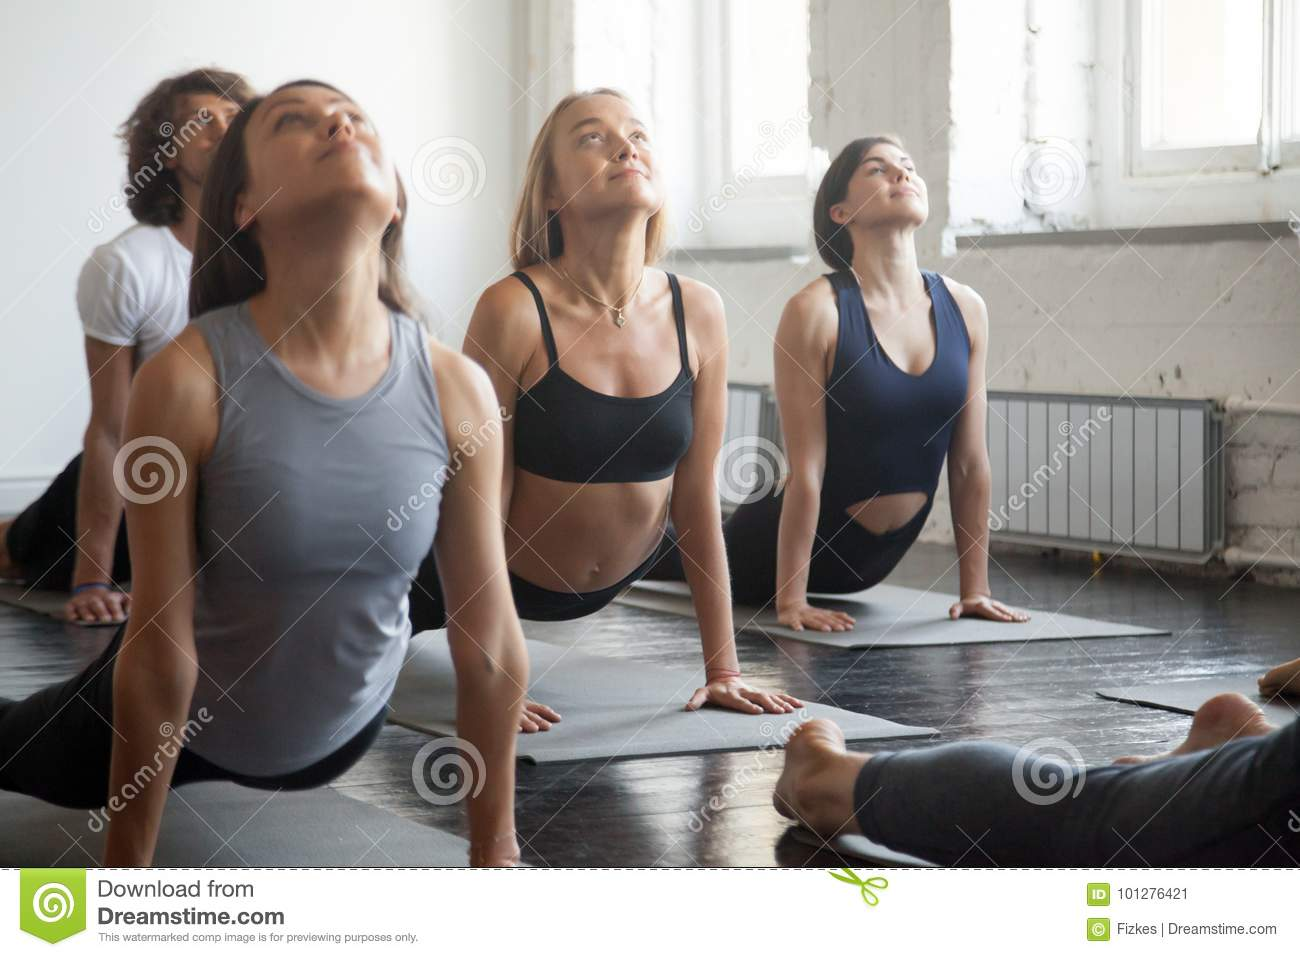 Group of young sporty people in upward facing dog pose